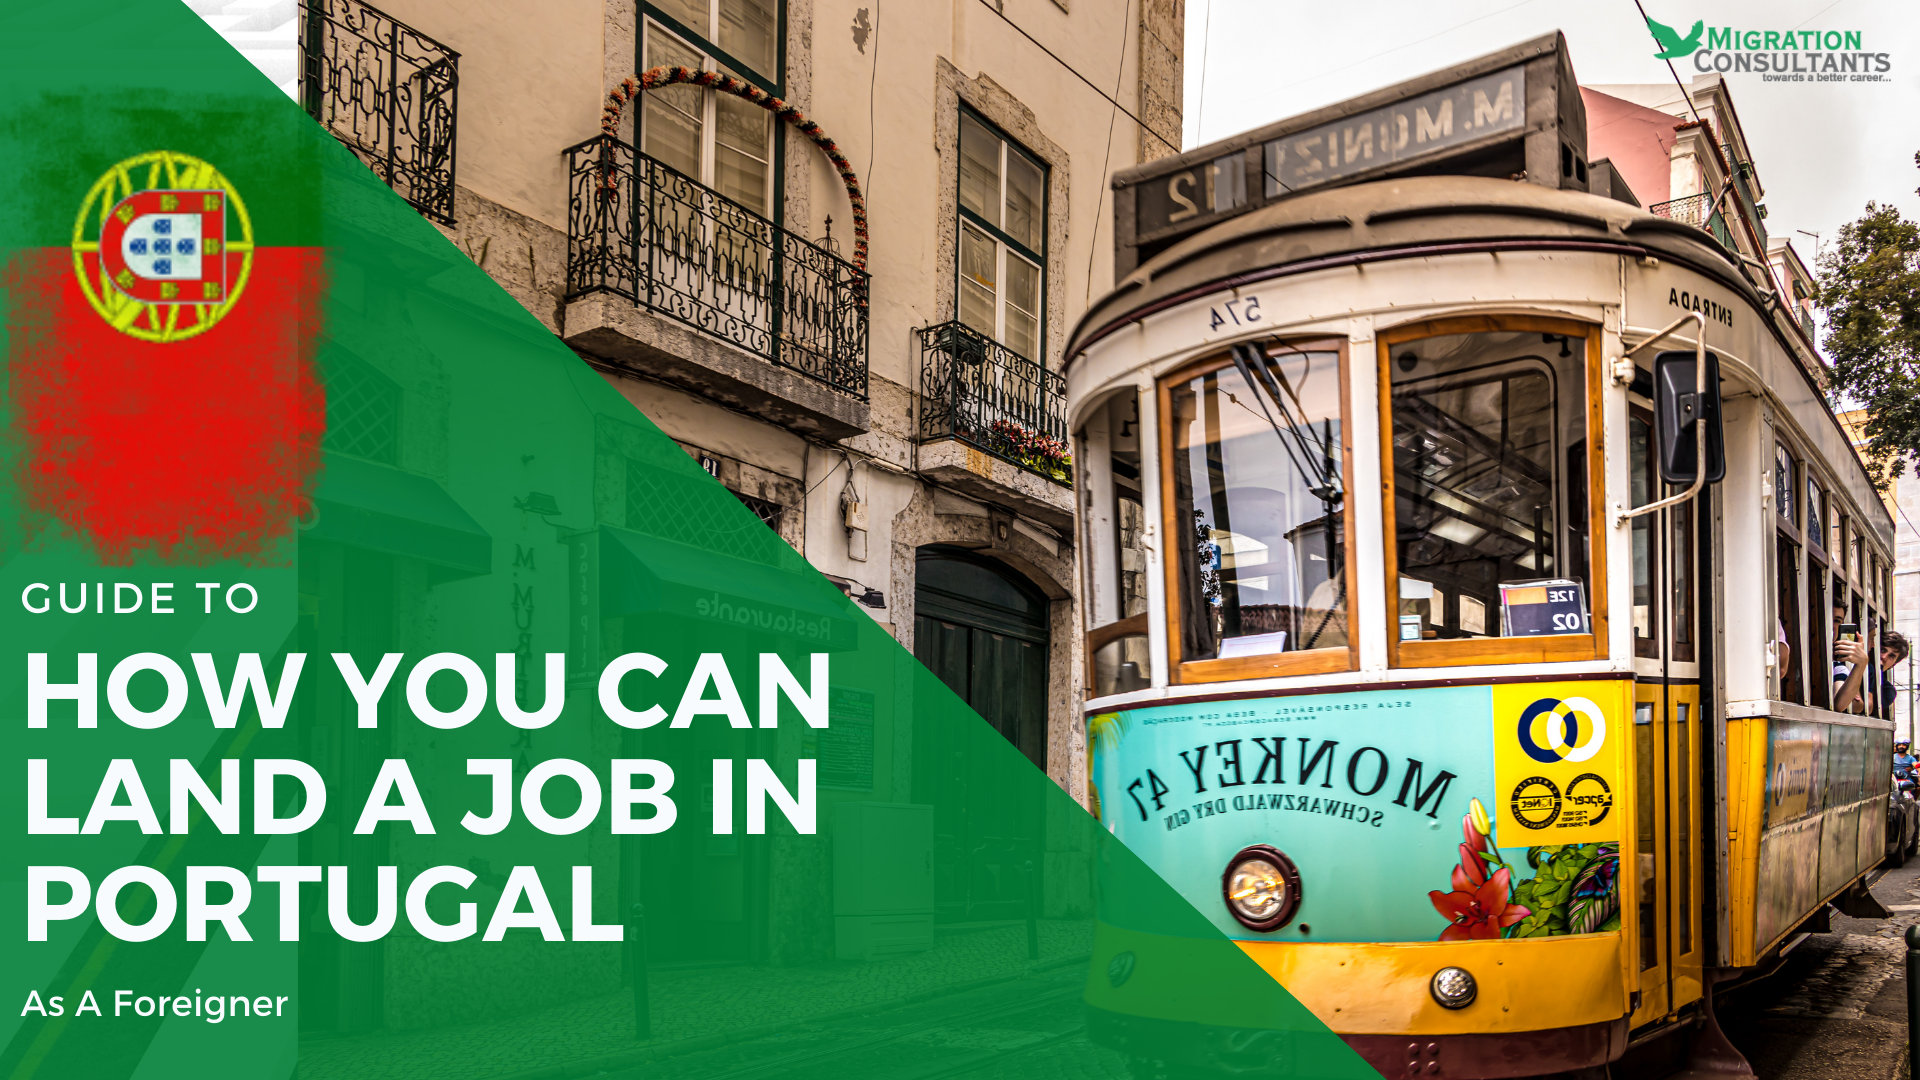 Guide To: How You Can Land A Job in Portugal As A Foreigner